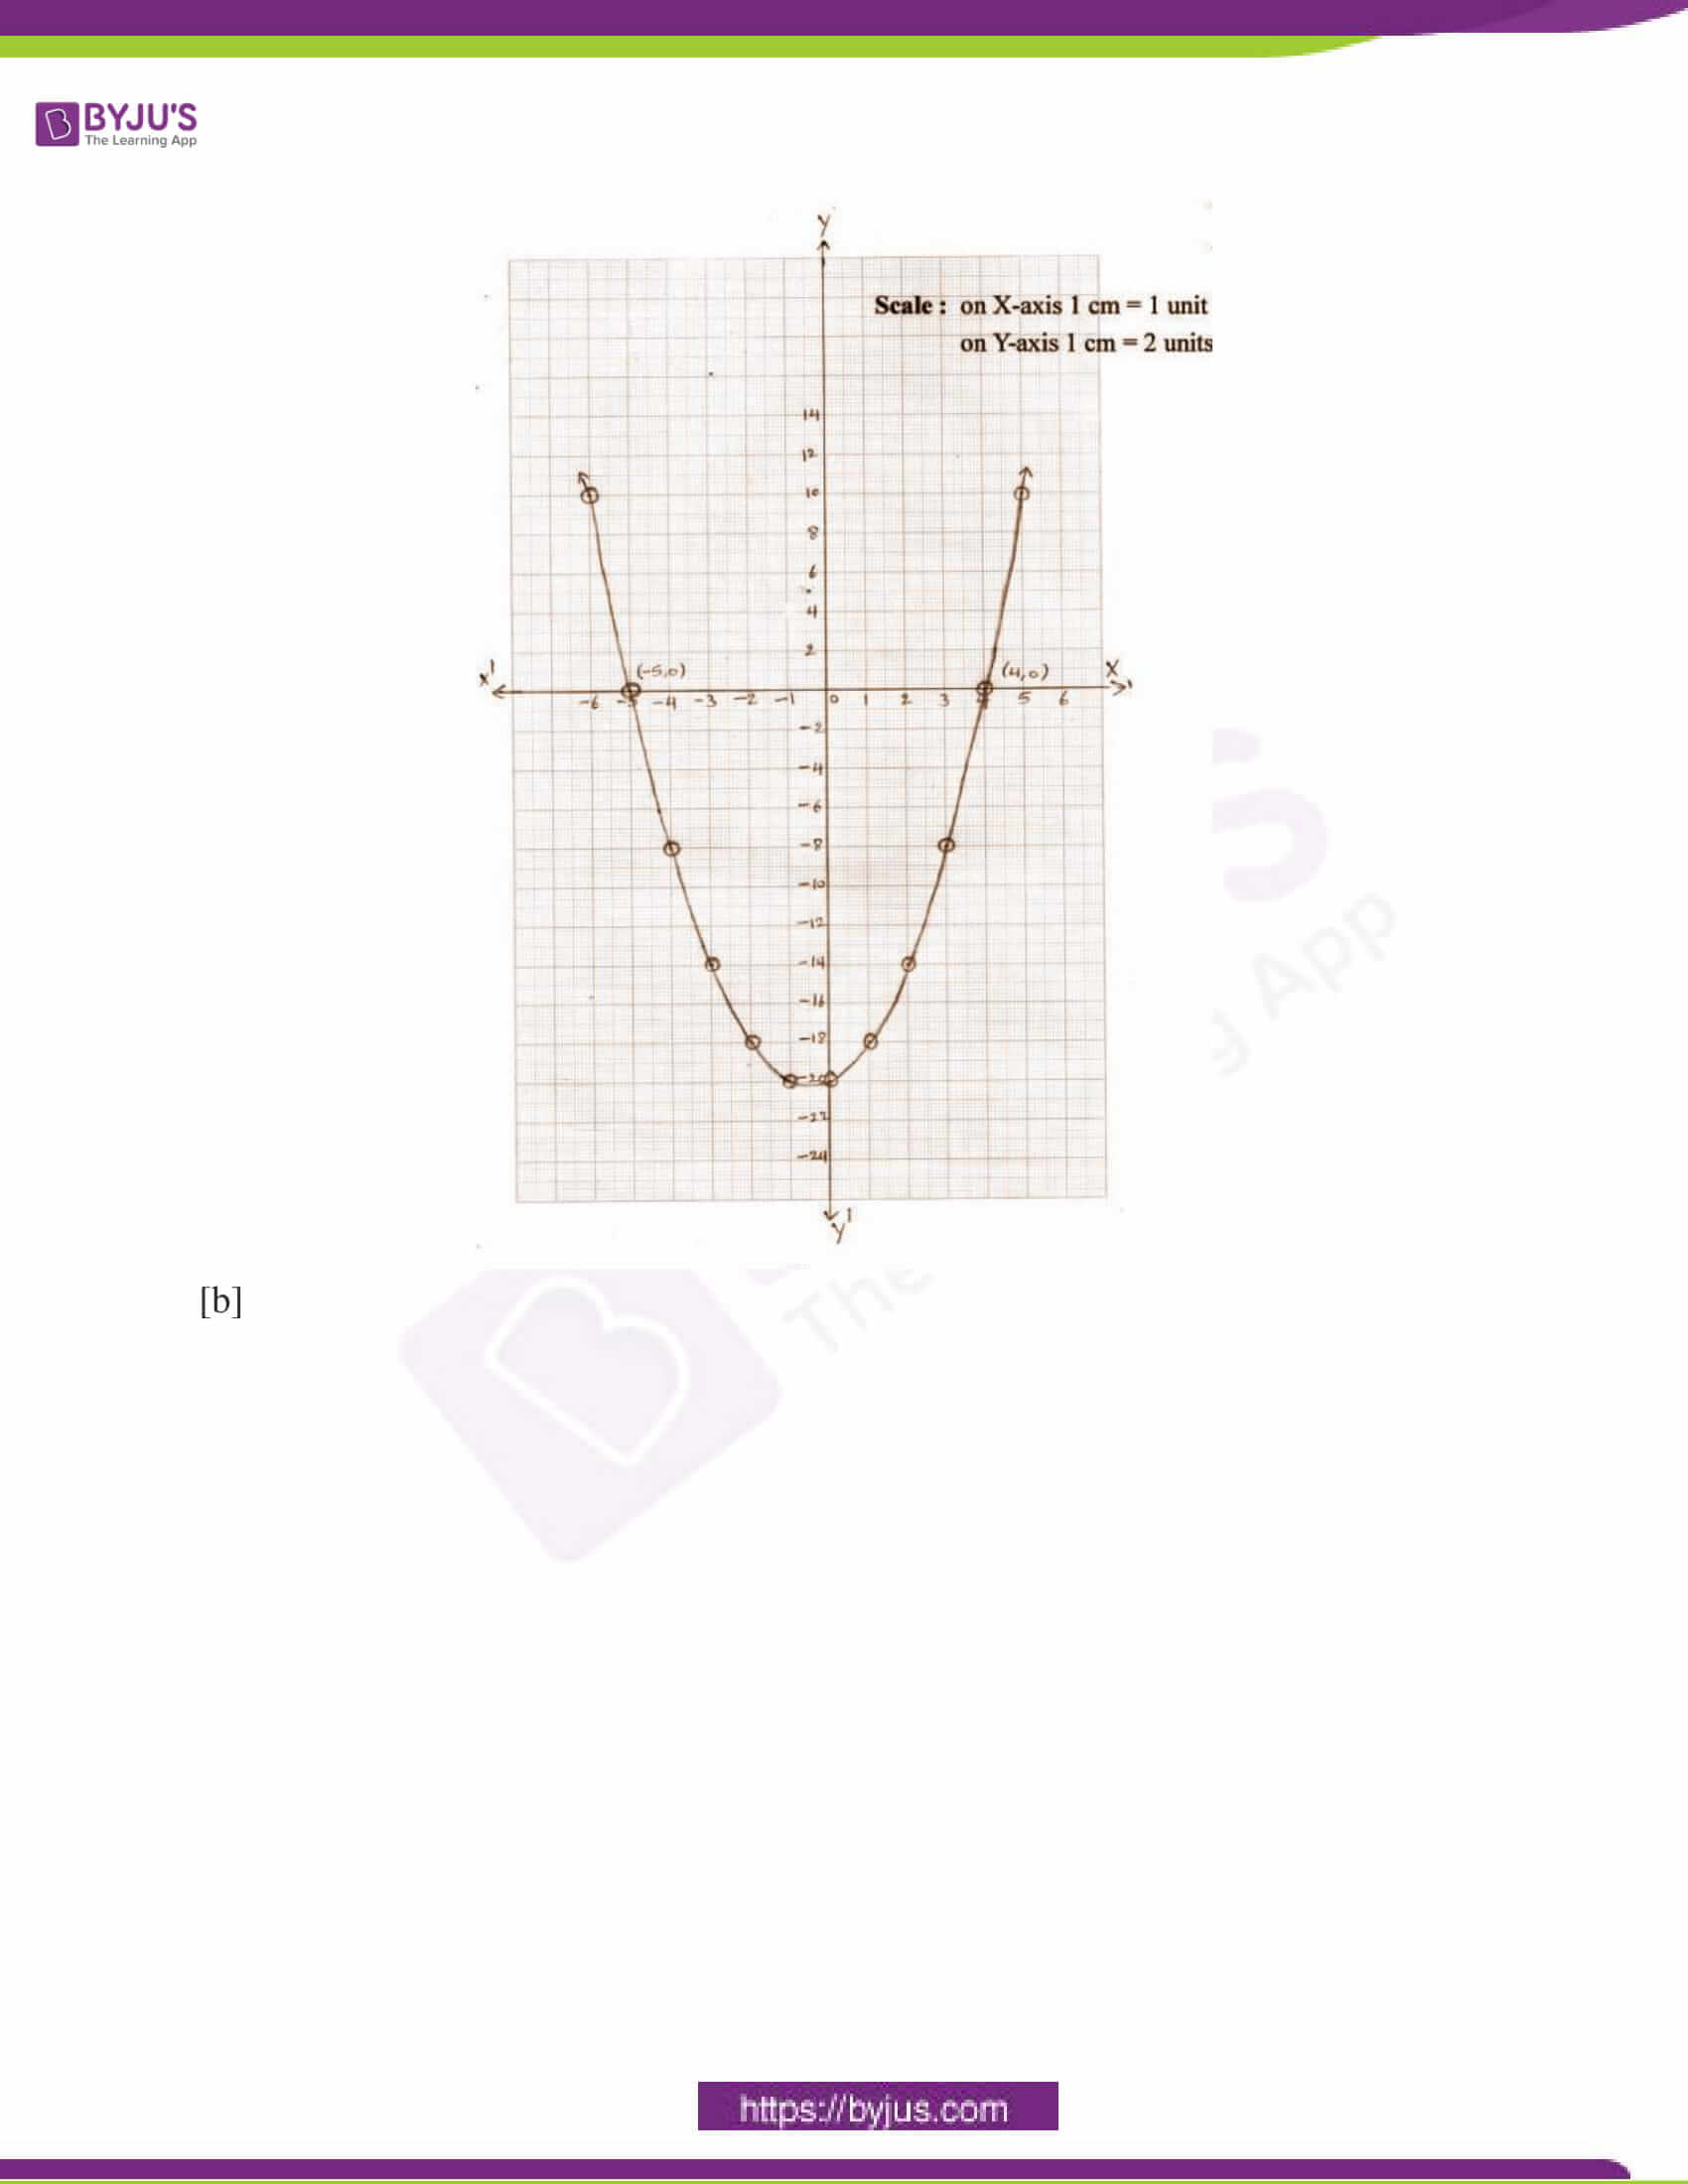 ap class 10 maths question paper 1 sol march 2019 09